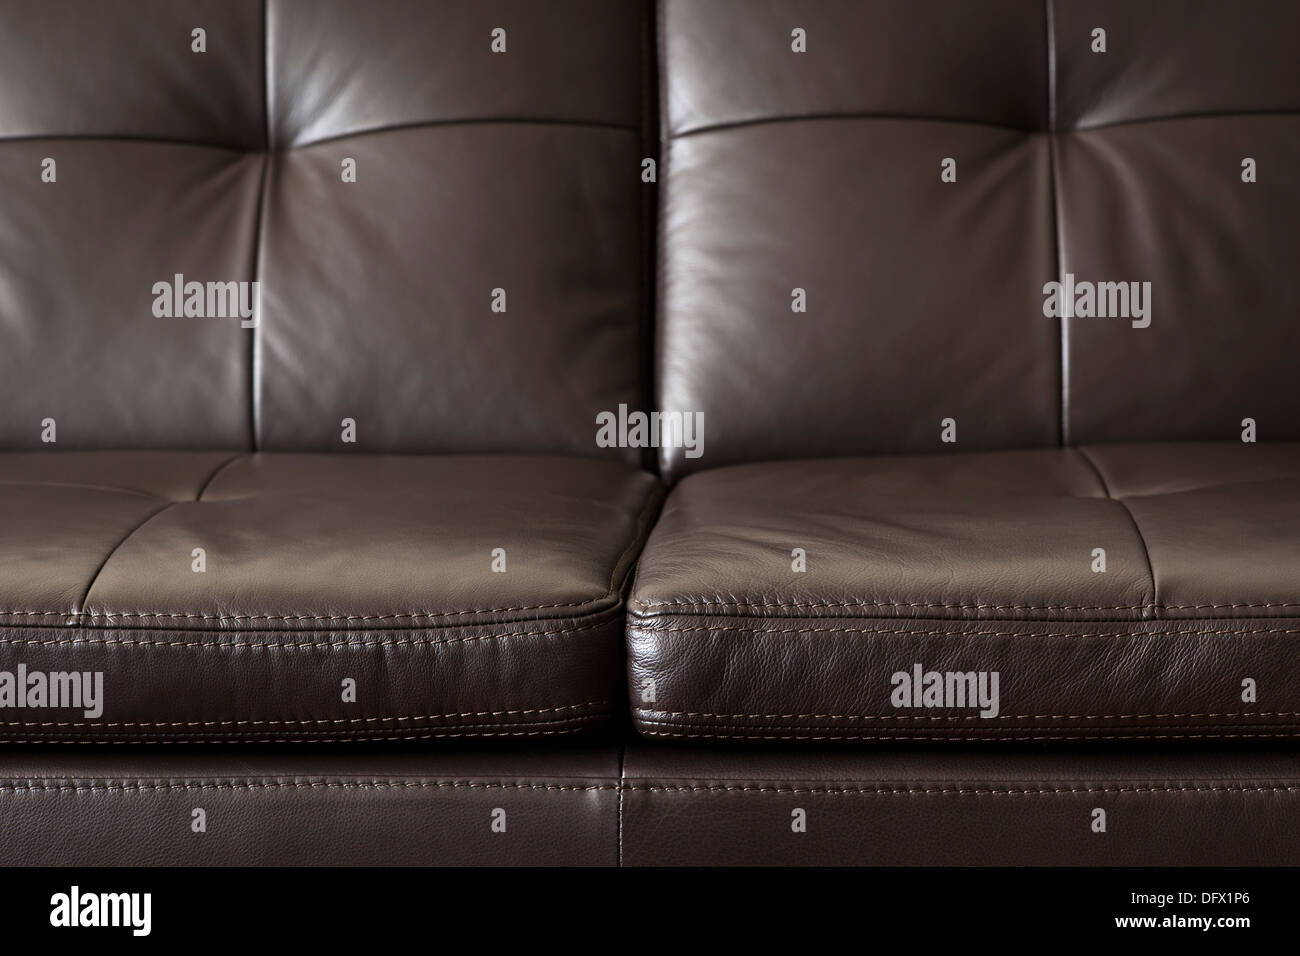 Closeup of luxurious expensive brown leather couch - Stock Image